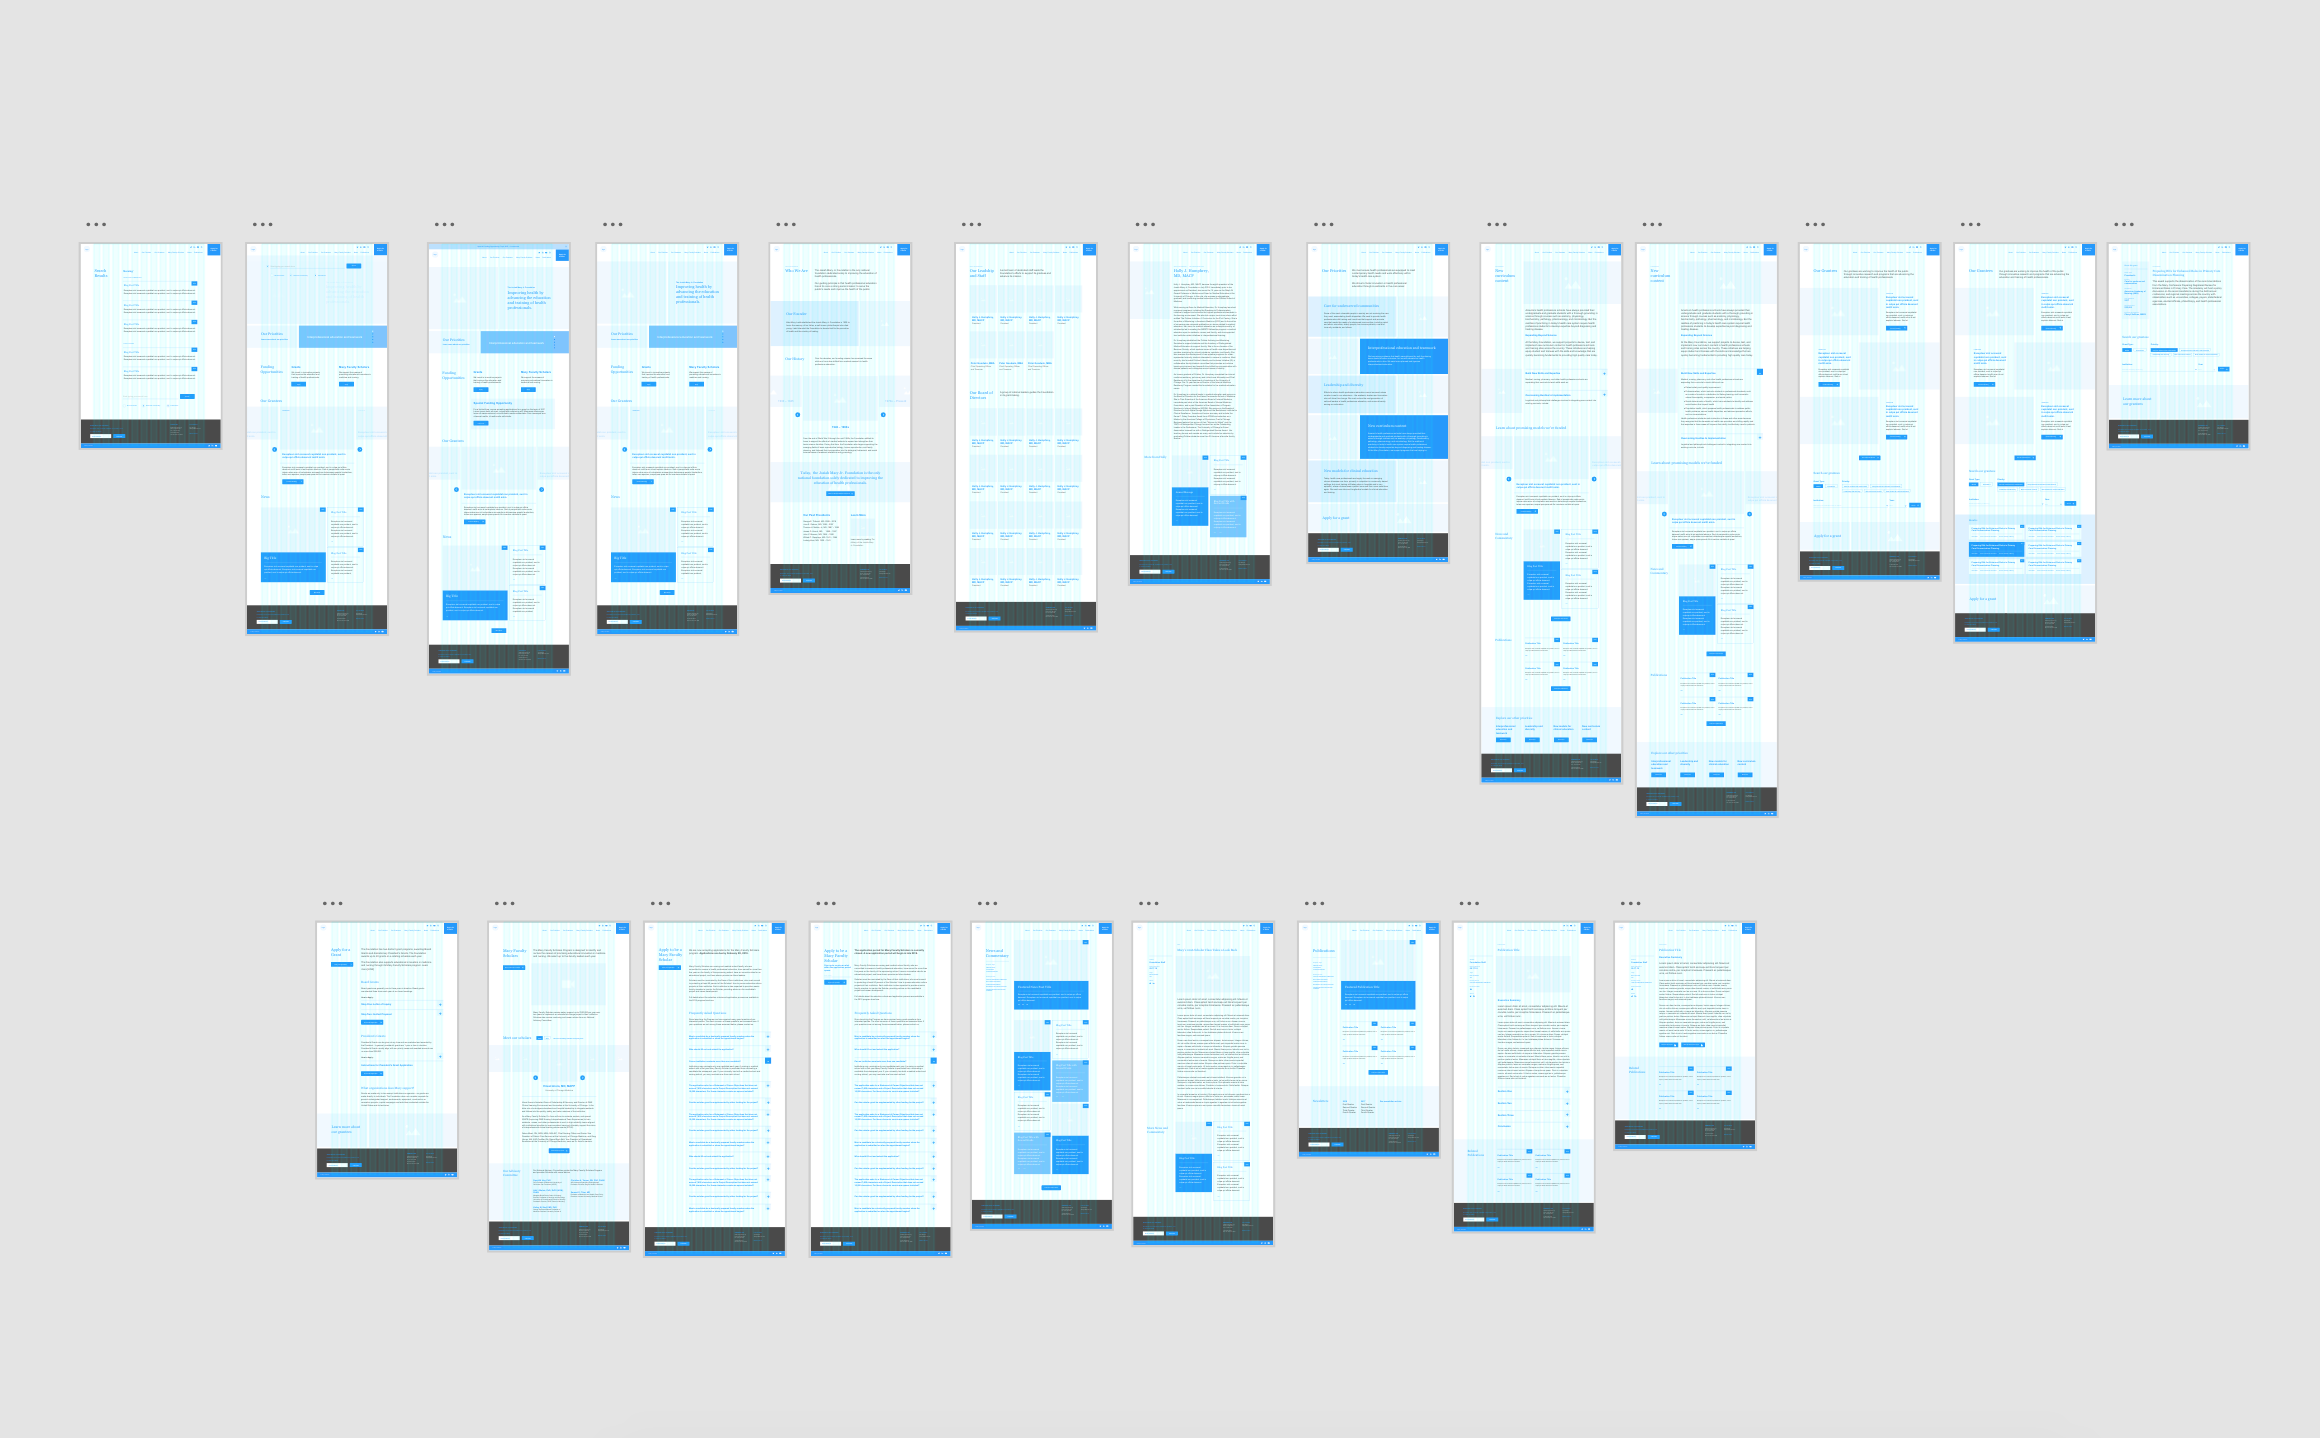 A full set of wireframes were completed prior to the design phase.